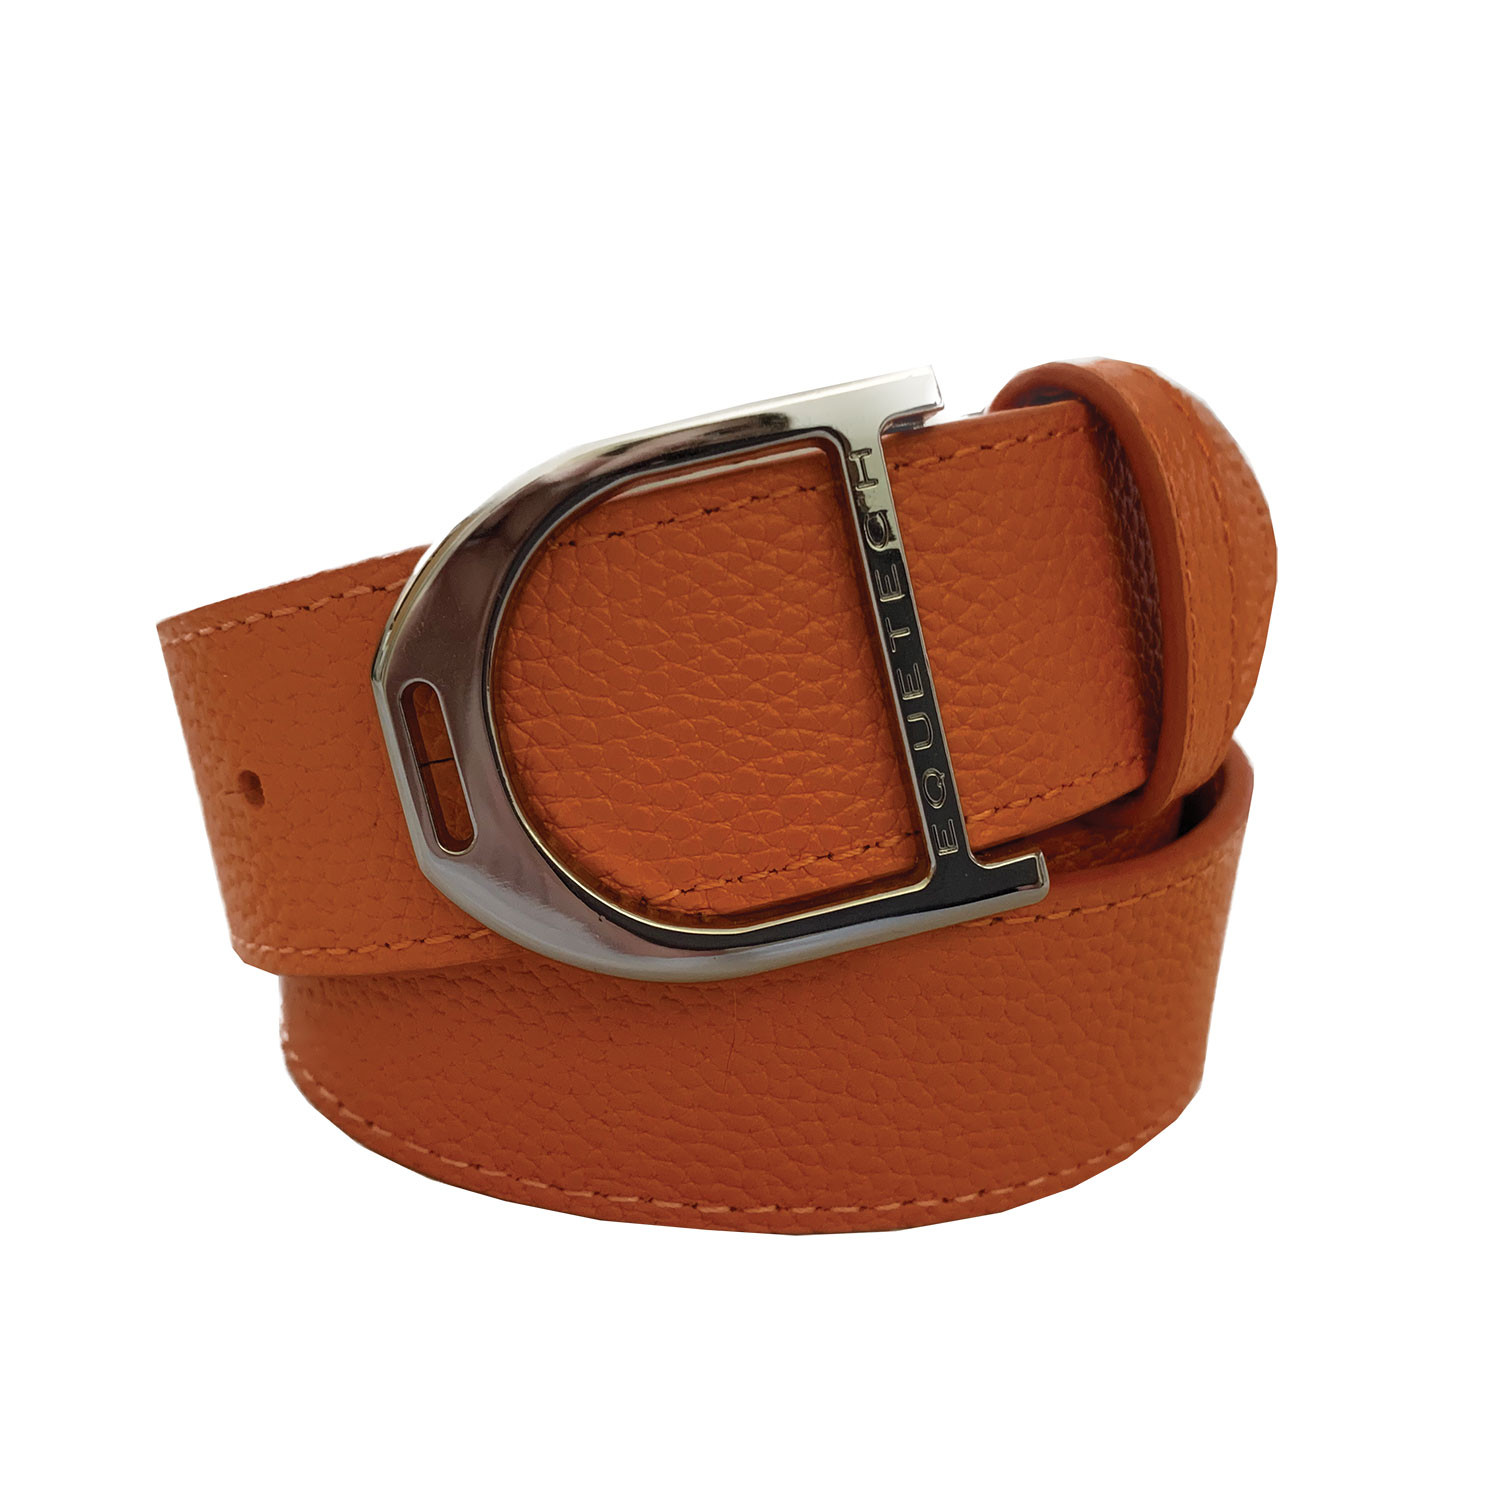 The Best New Women's Equestrian Belts - The Ultimate Accessory